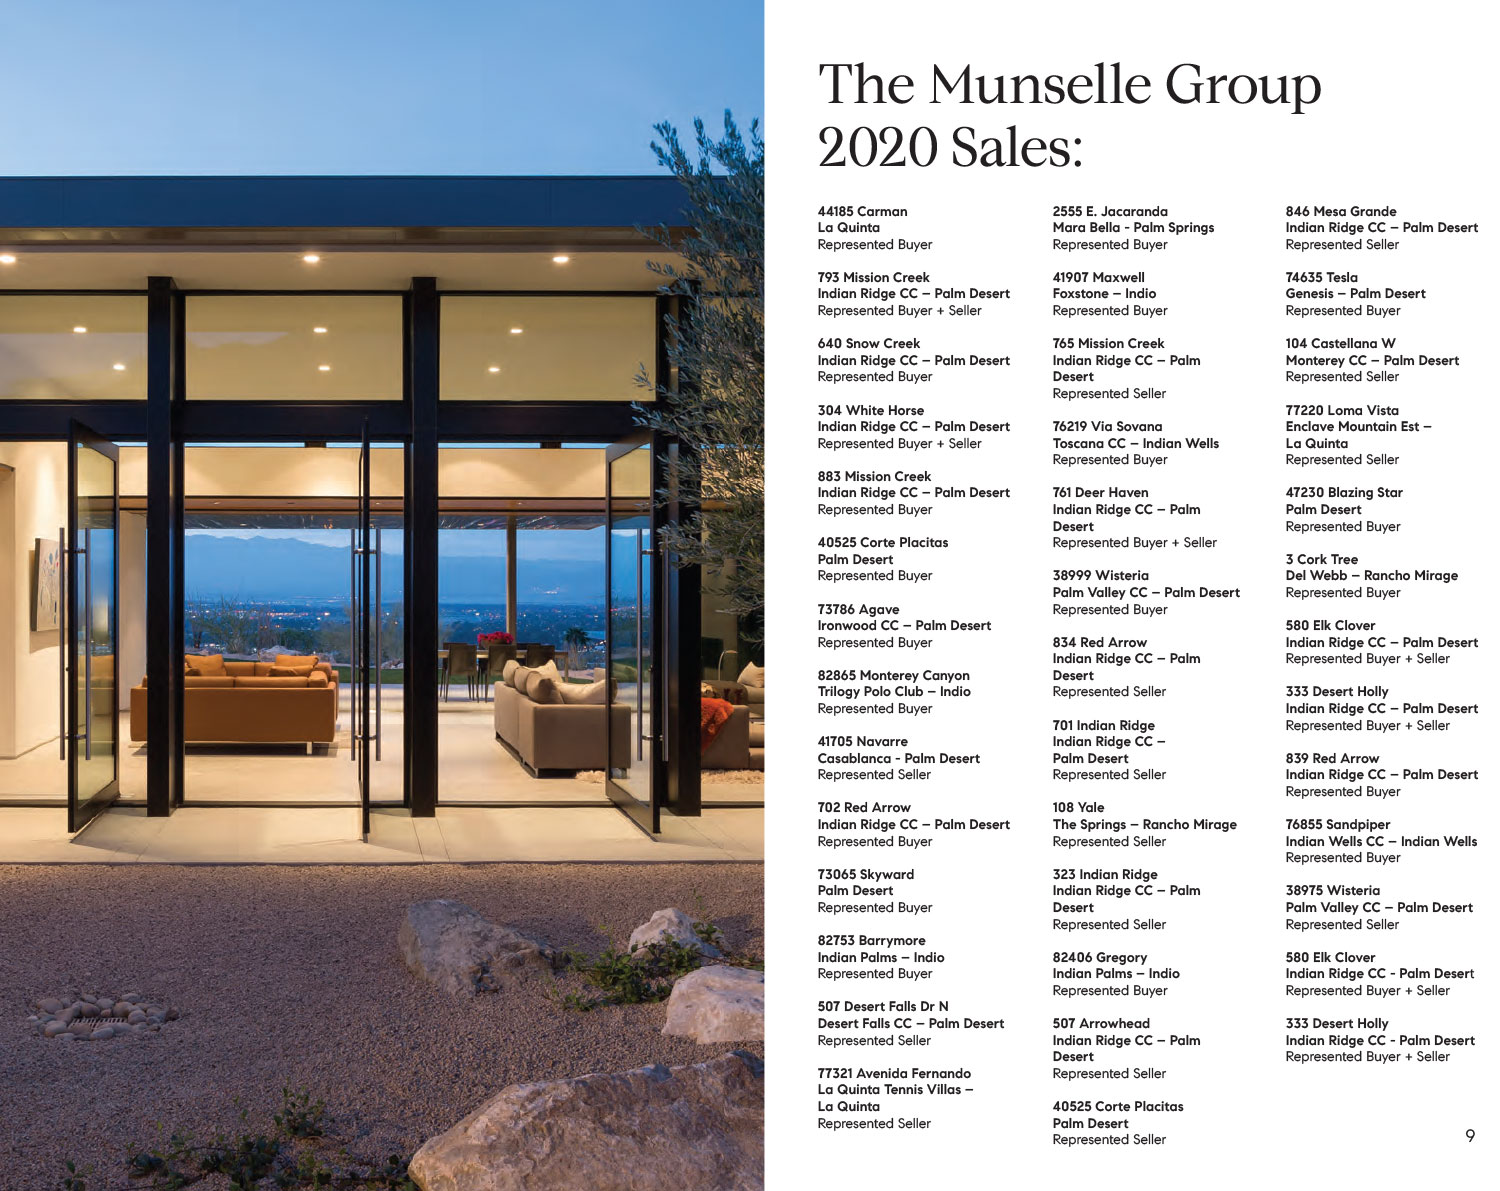 The Munselle Group 2020 Sales